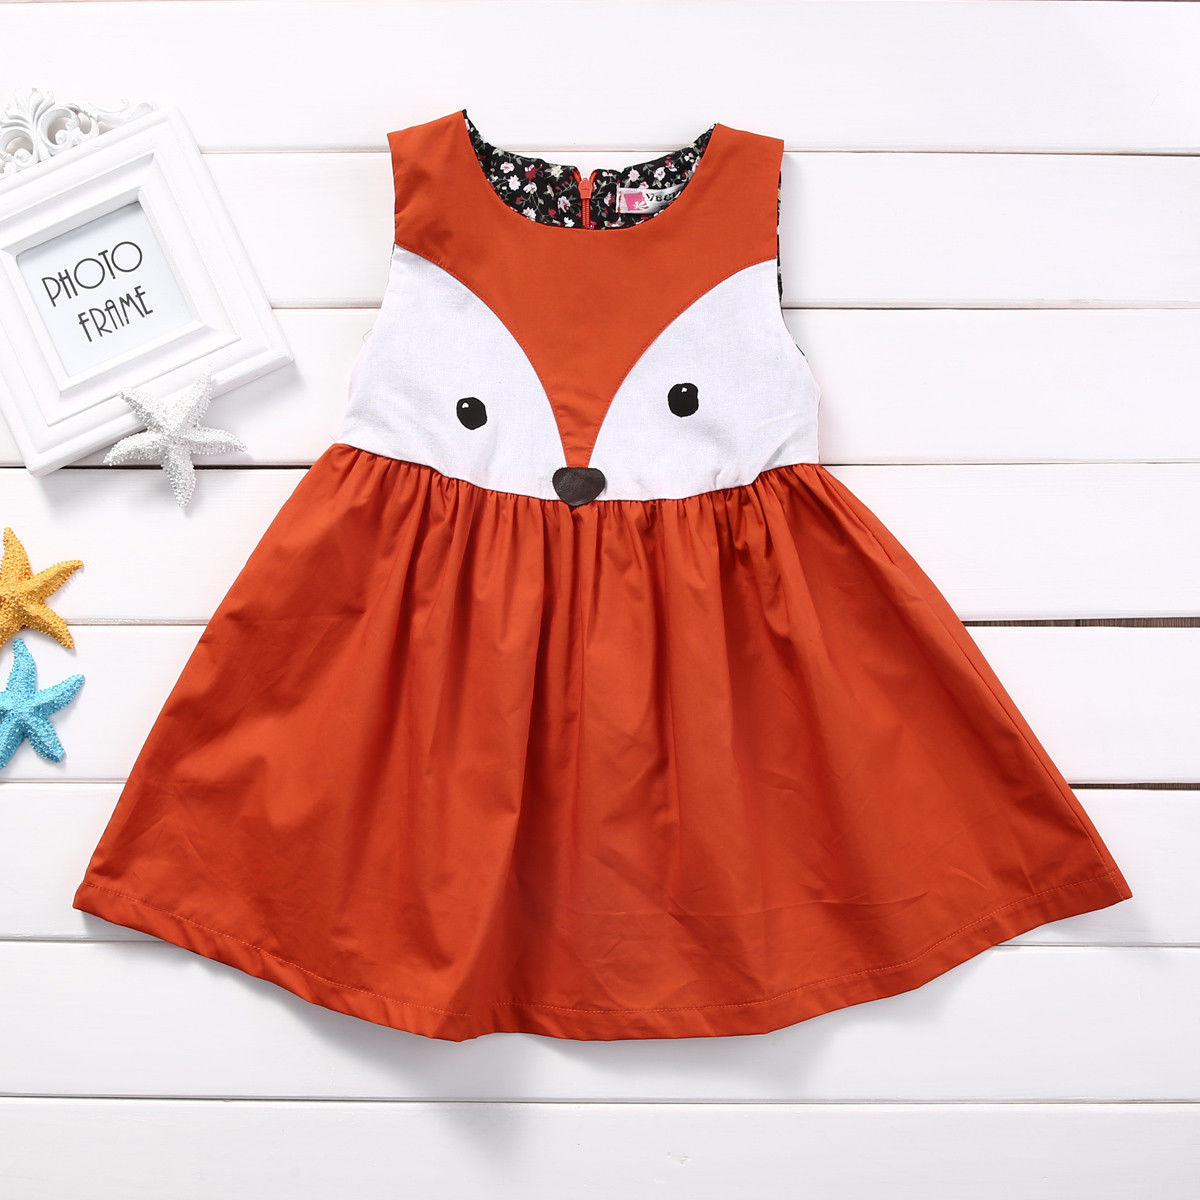 New-Baby-Girls-Kids-Clothing-Dresses-Princess-Sleeveless-Cartoon-Cute-Animals-Party-Tutu-Short-Casual-Girl-Dress-3